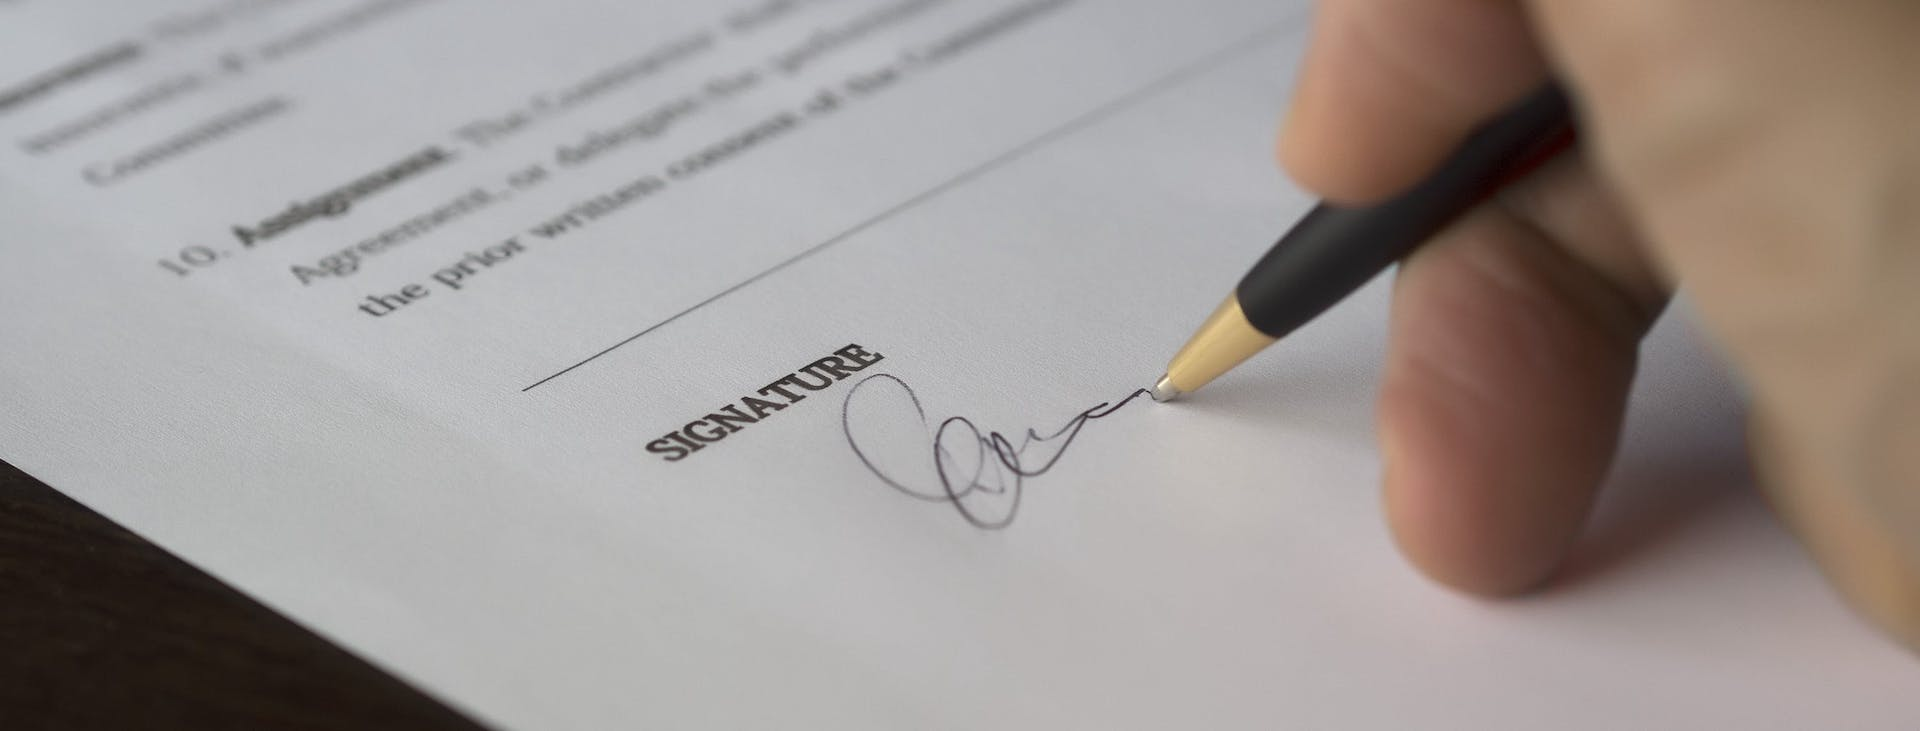 Hand signing document